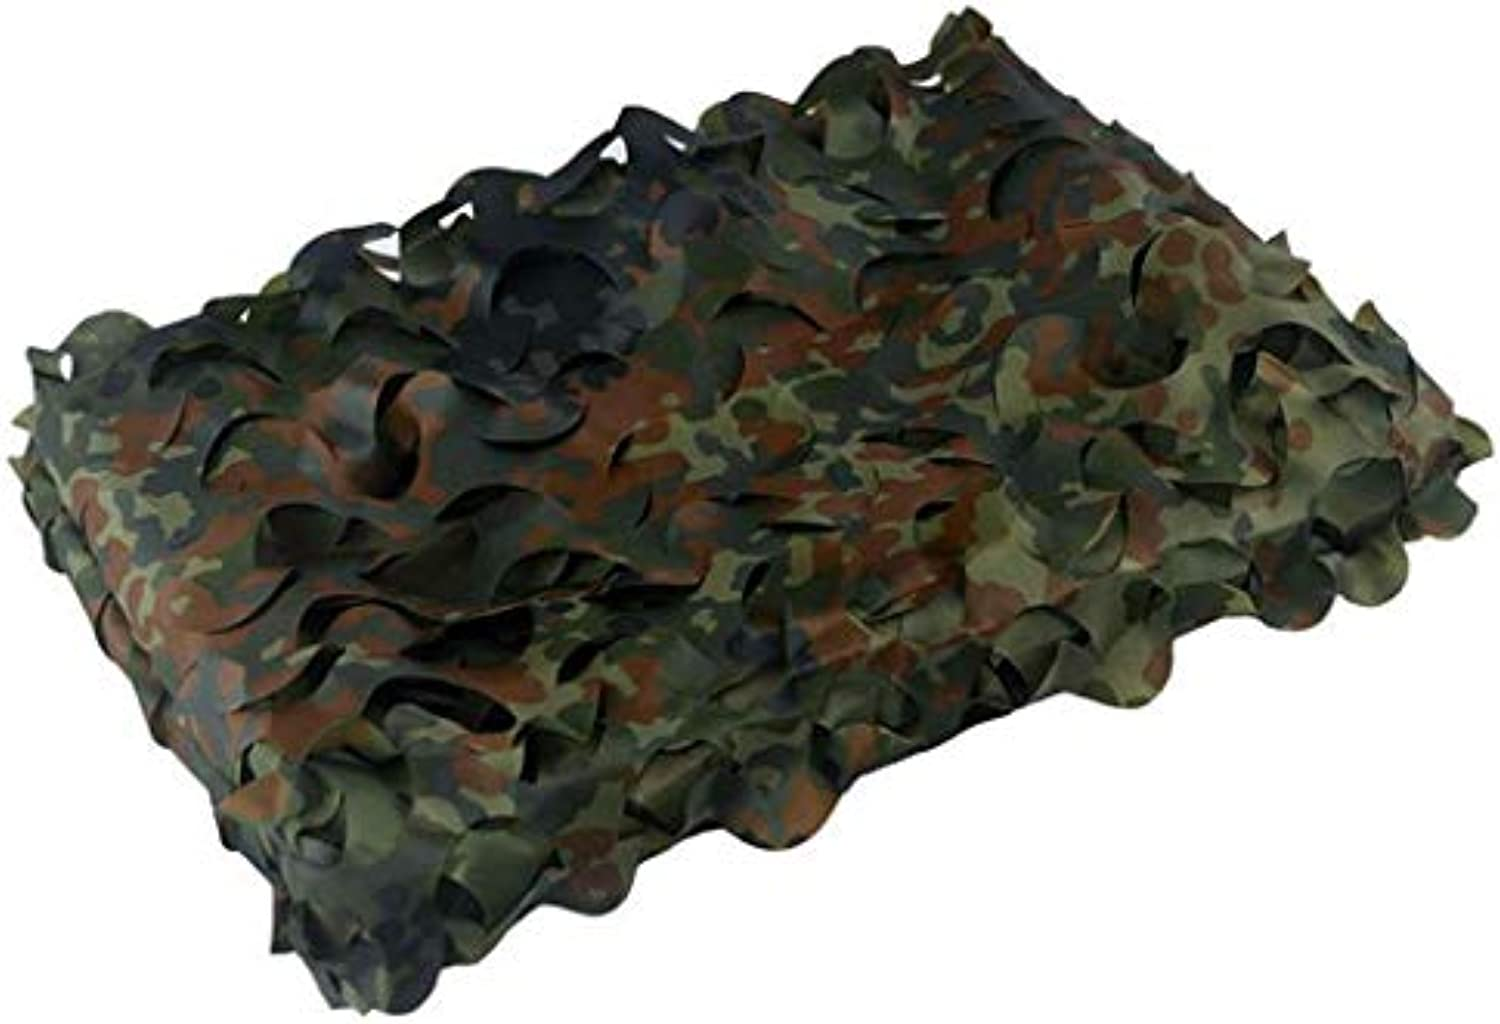 Forest Camouflage Net Camo Cover for Hunting Camping Hide Shooting Camping Sunshade Cover Decoration Air Defense Camouflage Net,1.5x4m